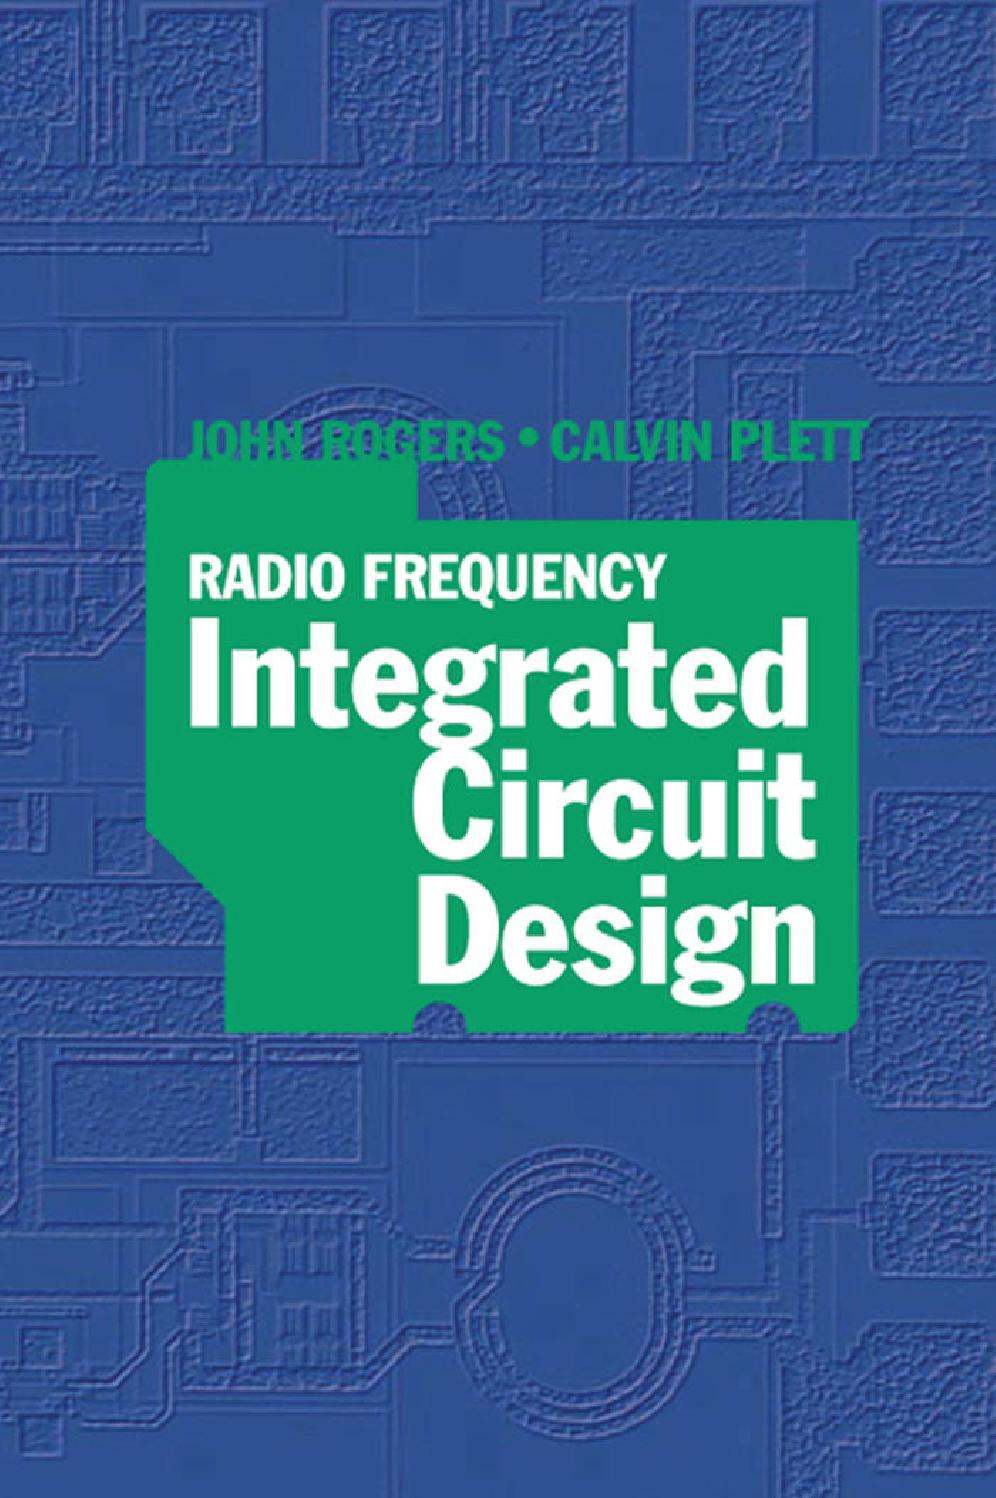 Artech Radio Frequency Integrated Circuit Design By Luiz Andrade Basically A Silicon Controlled Rectifier Scr Implemented With Discrete Issuu